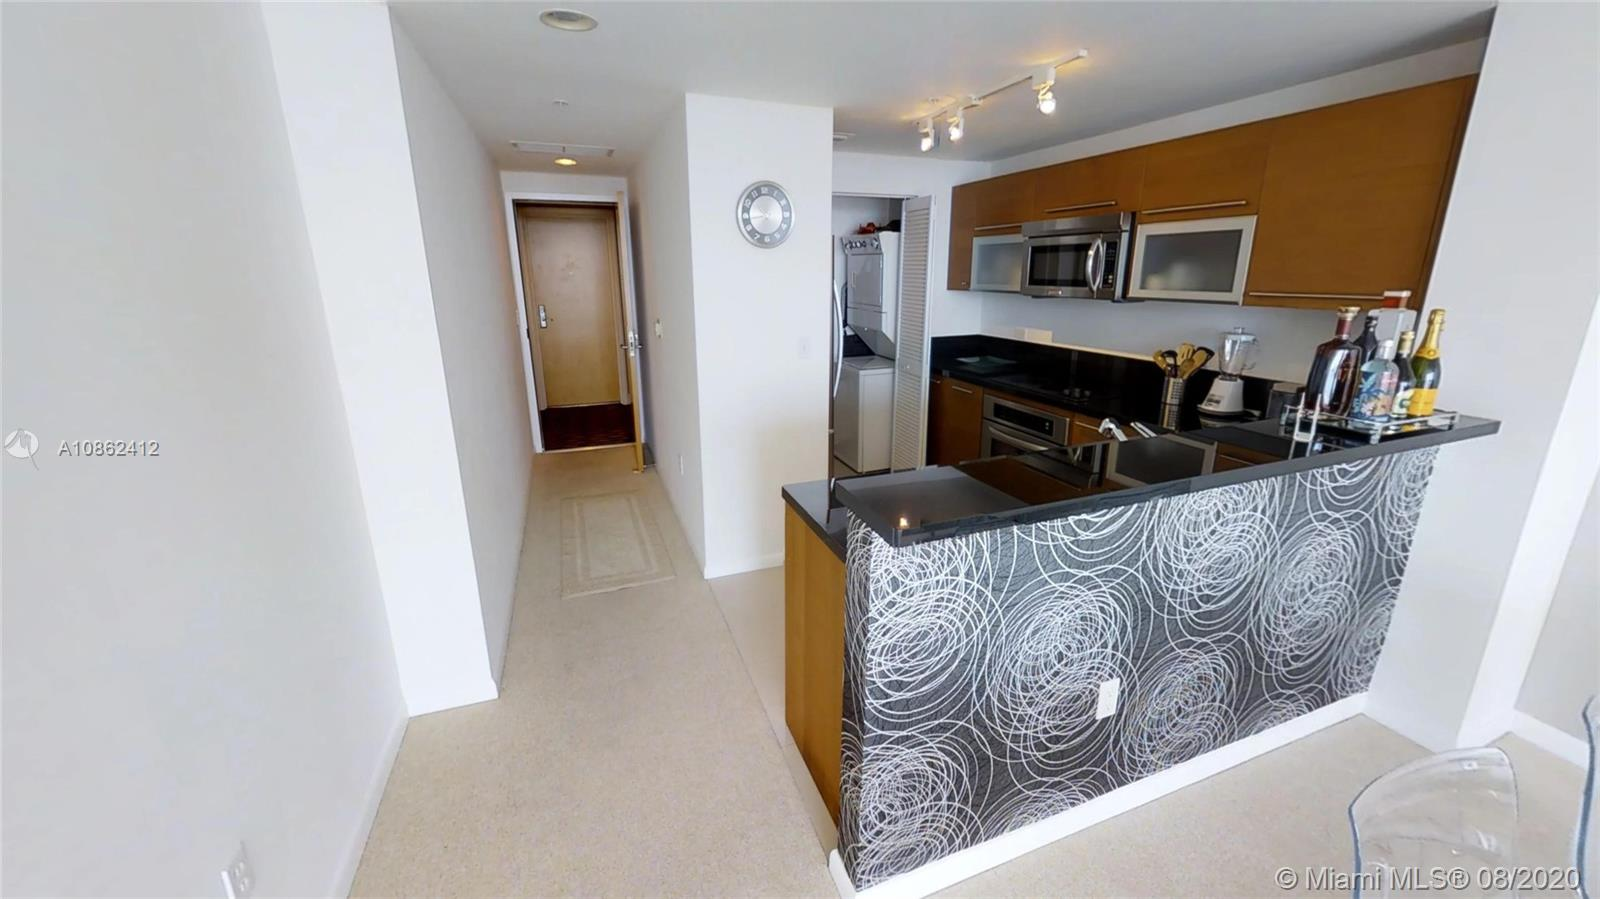 253 NE 2nd # 2105, Miami, Florida 33132, 1 Bedroom Bedrooms, ,1 BathroomBathrooms,Residential,For Sale,253 NE 2nd # 2105,A10862412